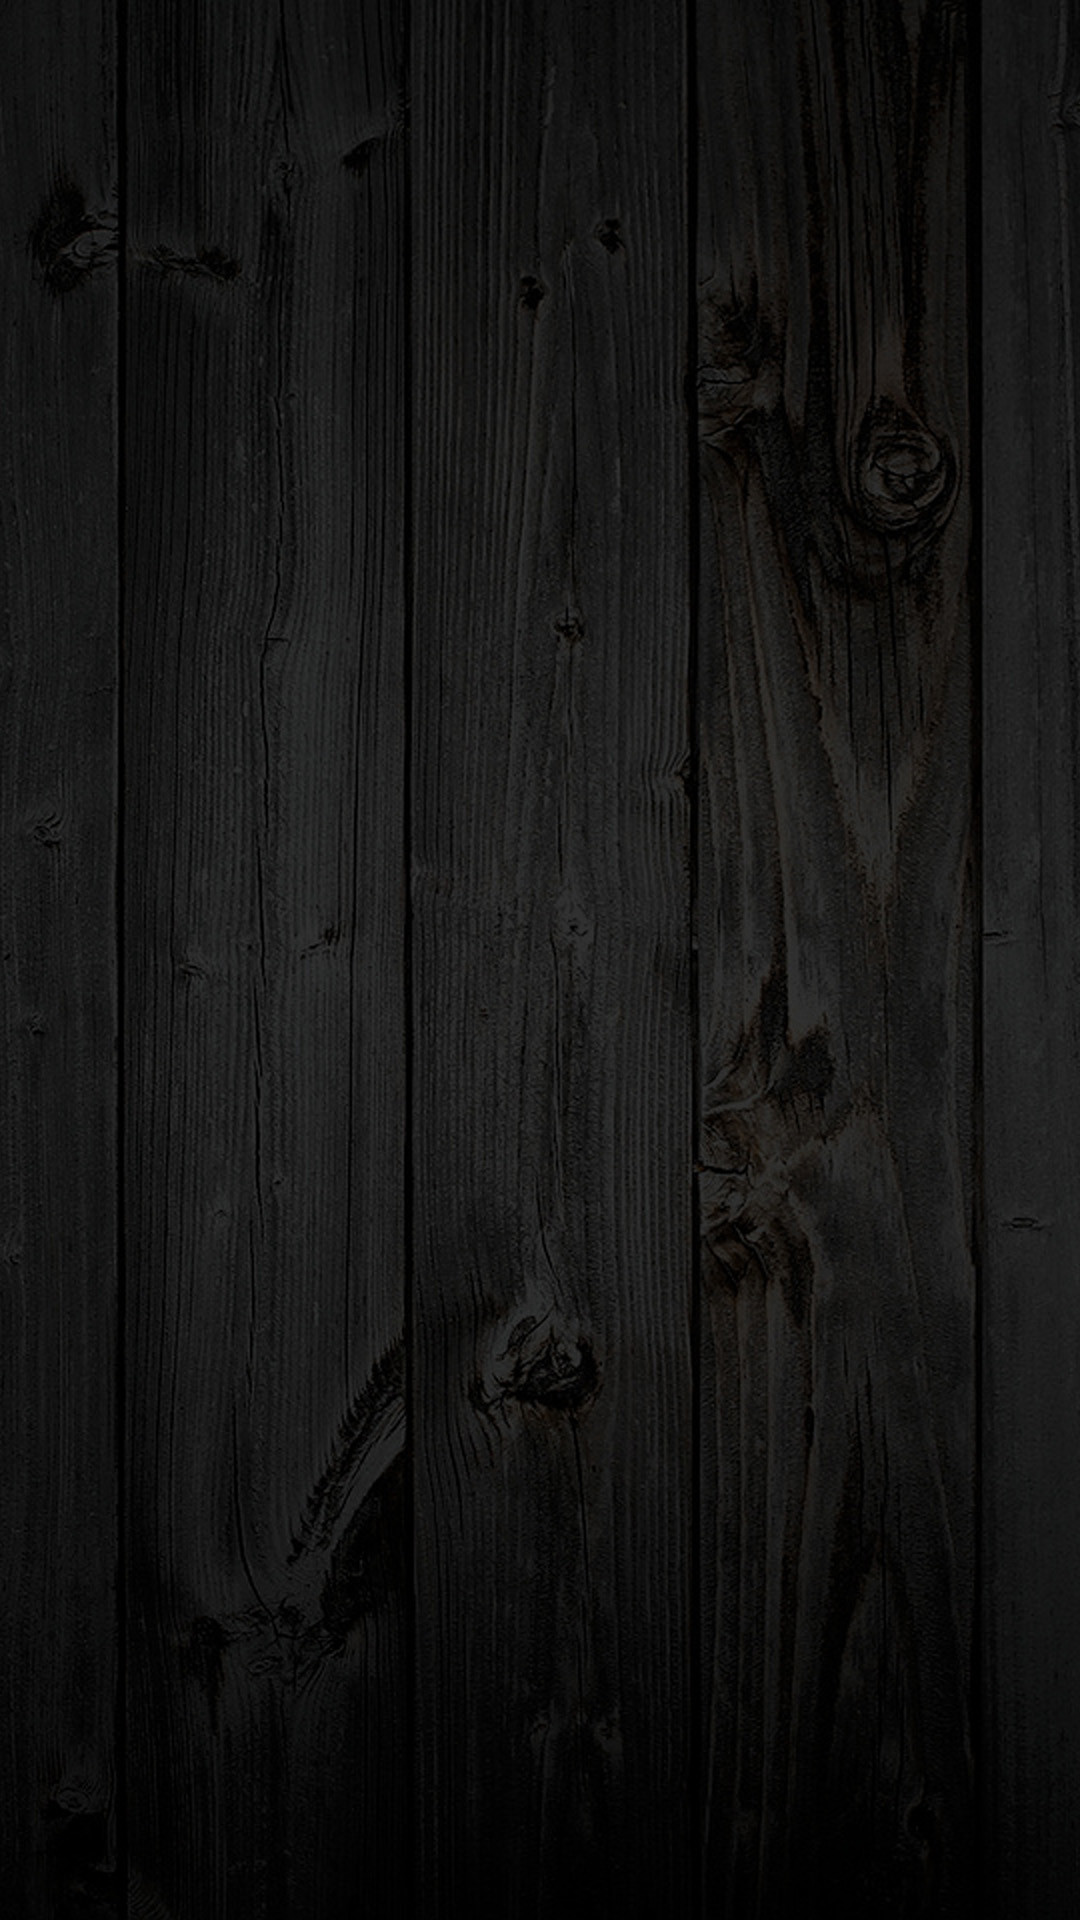 2560x1080 Preview Wallpaper Wood Dark Background Texture